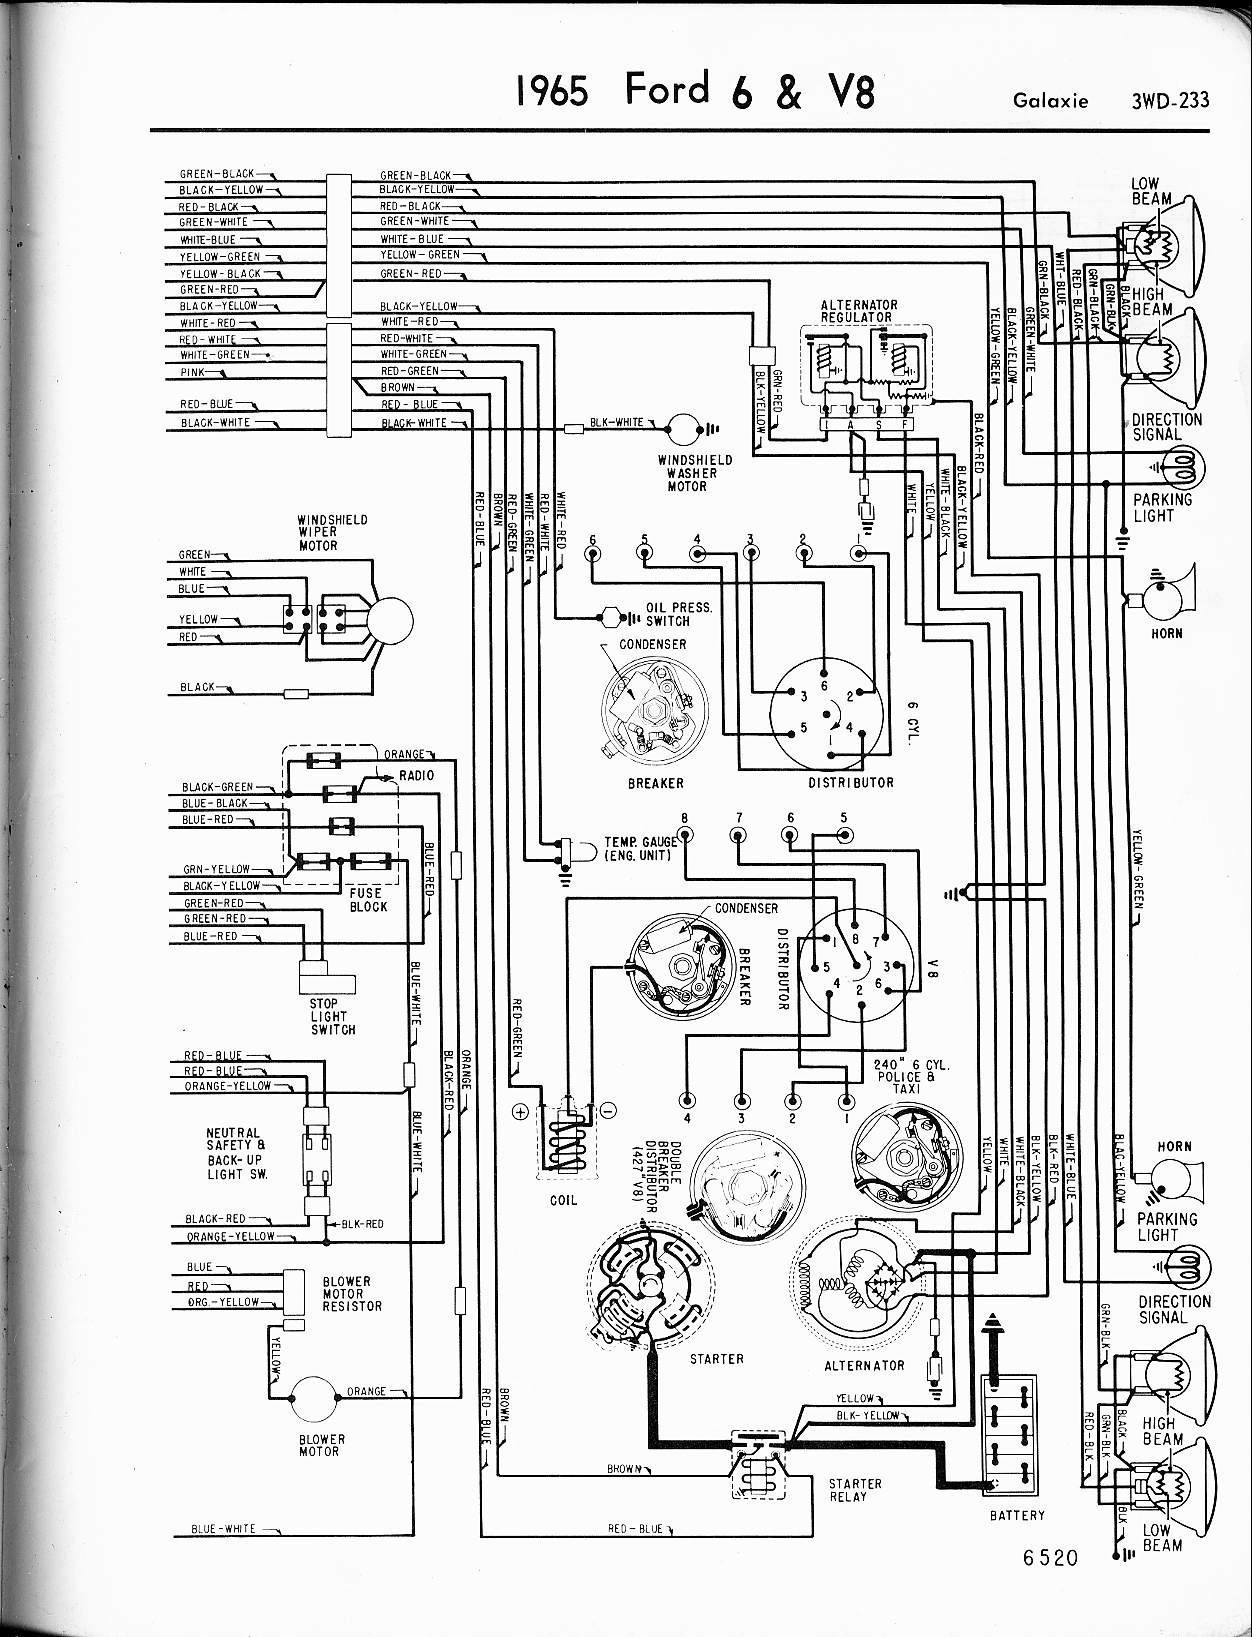 2005 Ford Focus Wiring Diagram Electrical 2004 Radio Inspirational Image Rh Mainetreasurechest Com Harness